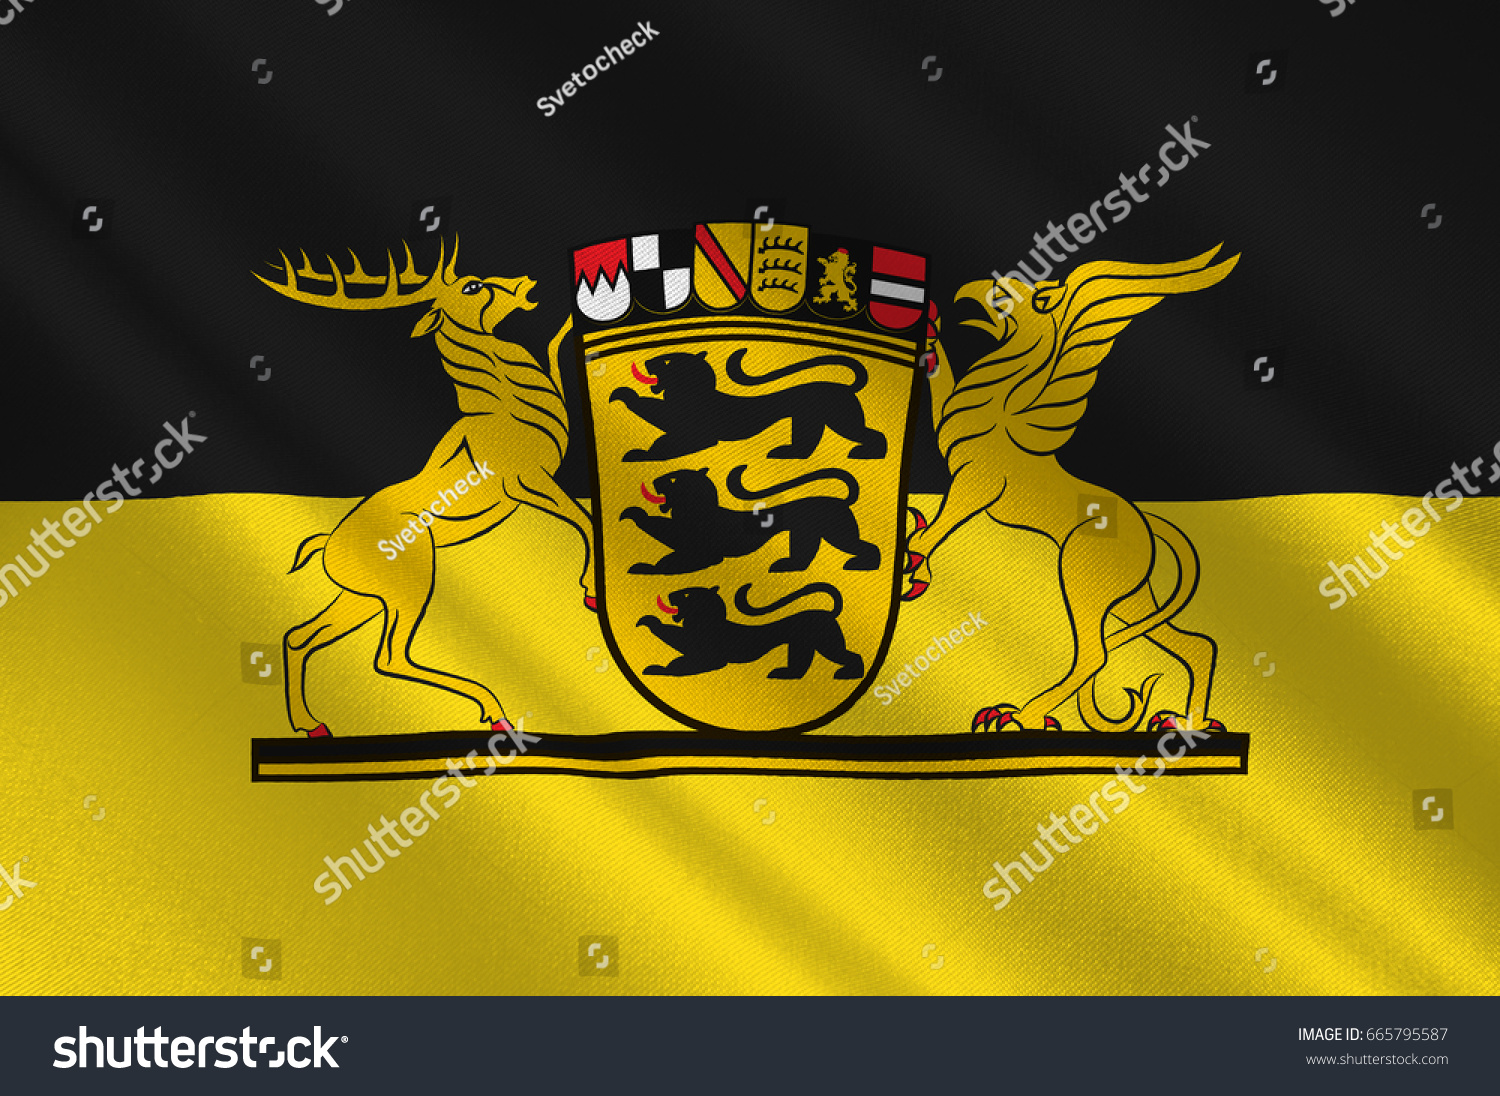 Flag badenwuerttemberg state germany located southwest stock flag of baden wuerttemberg is a state in germany located in the southwest east buycottarizona Gallery